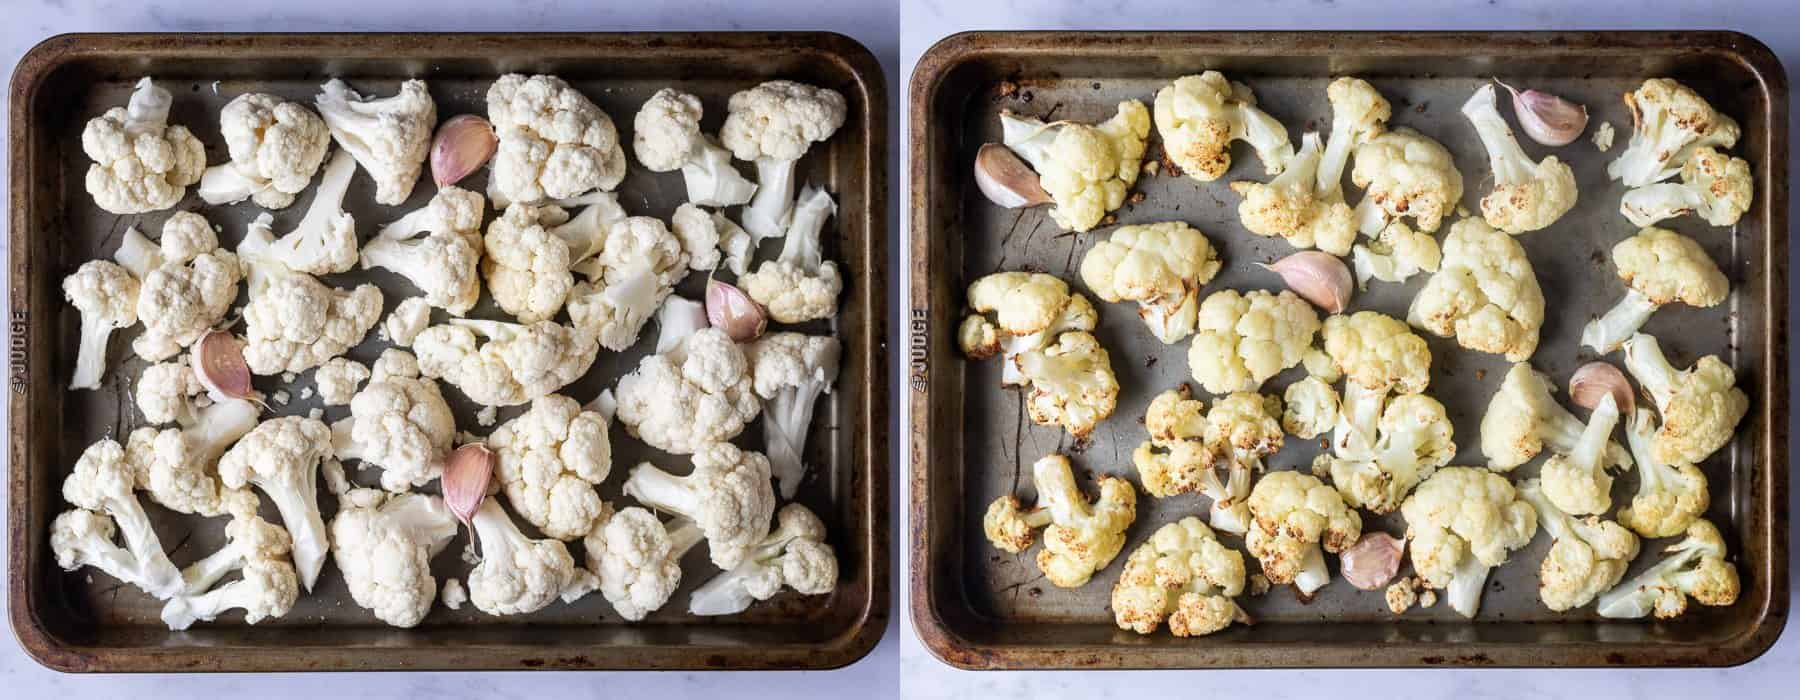 step 1 - roasting the cauliflower